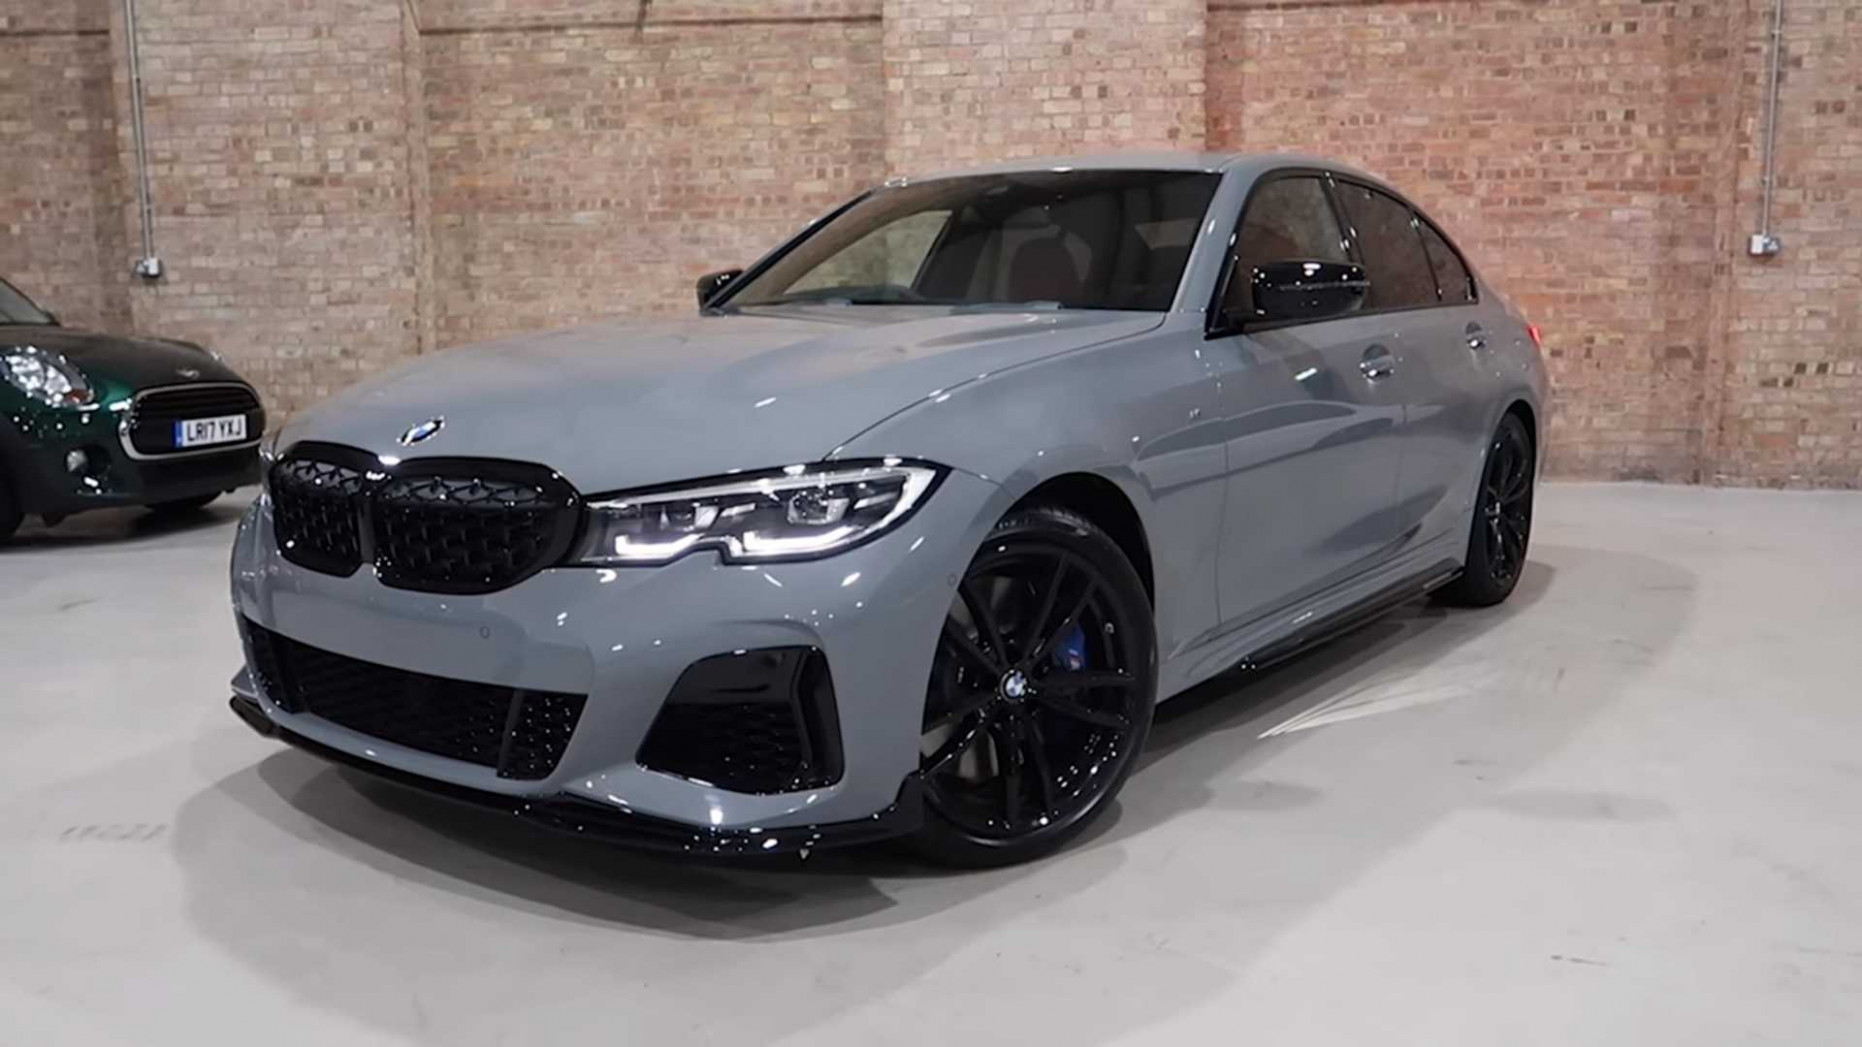 6 BMW M6i With Audi Nardo Gray Paint Stands Out - bmw m340i 2020